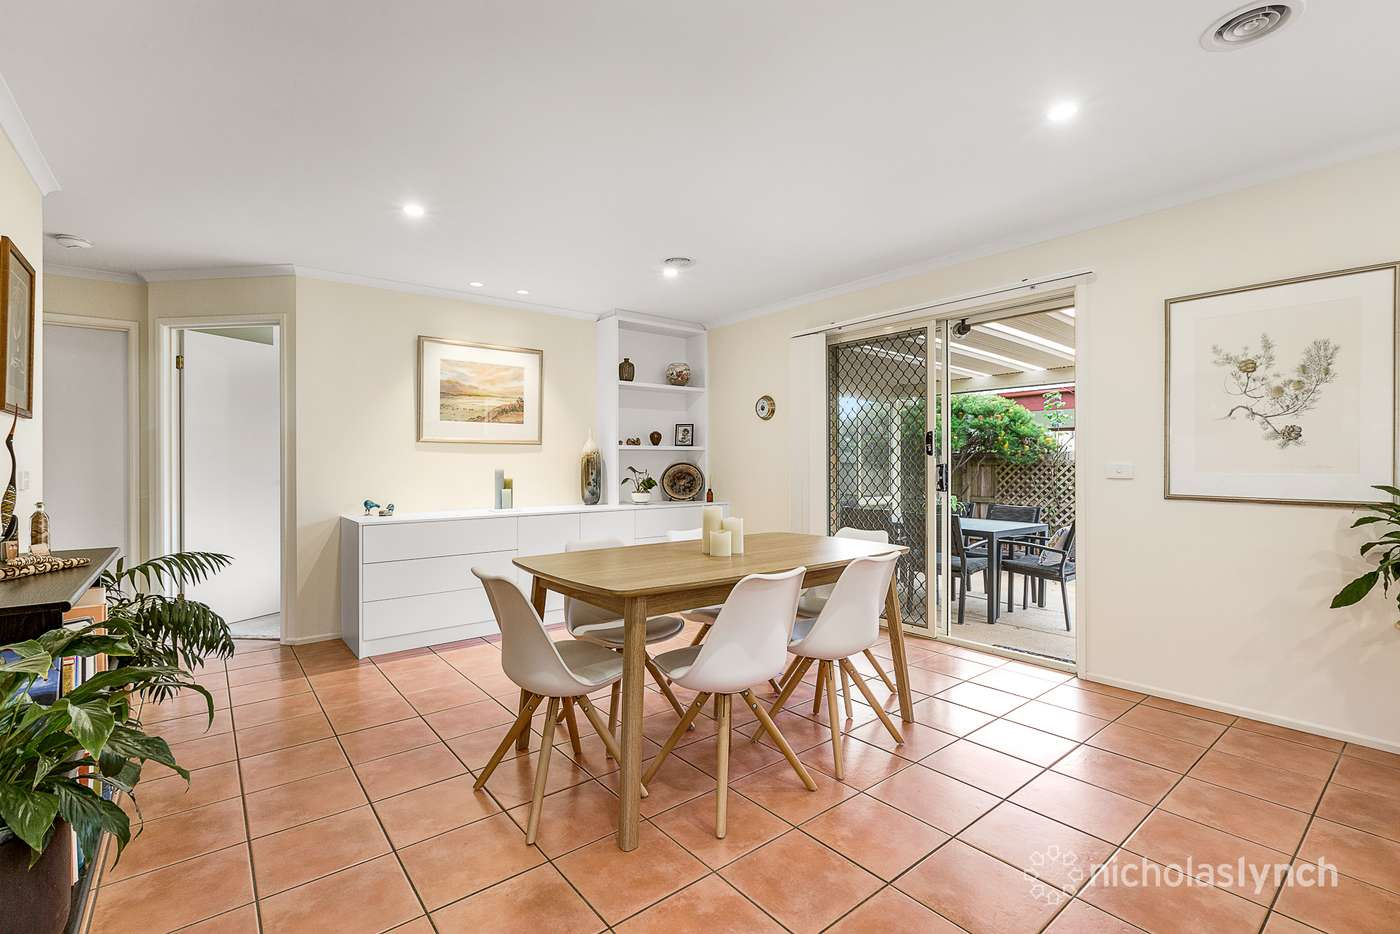 Fifth view of Homely house listing, 12 Lawson Court, Mornington VIC 3931